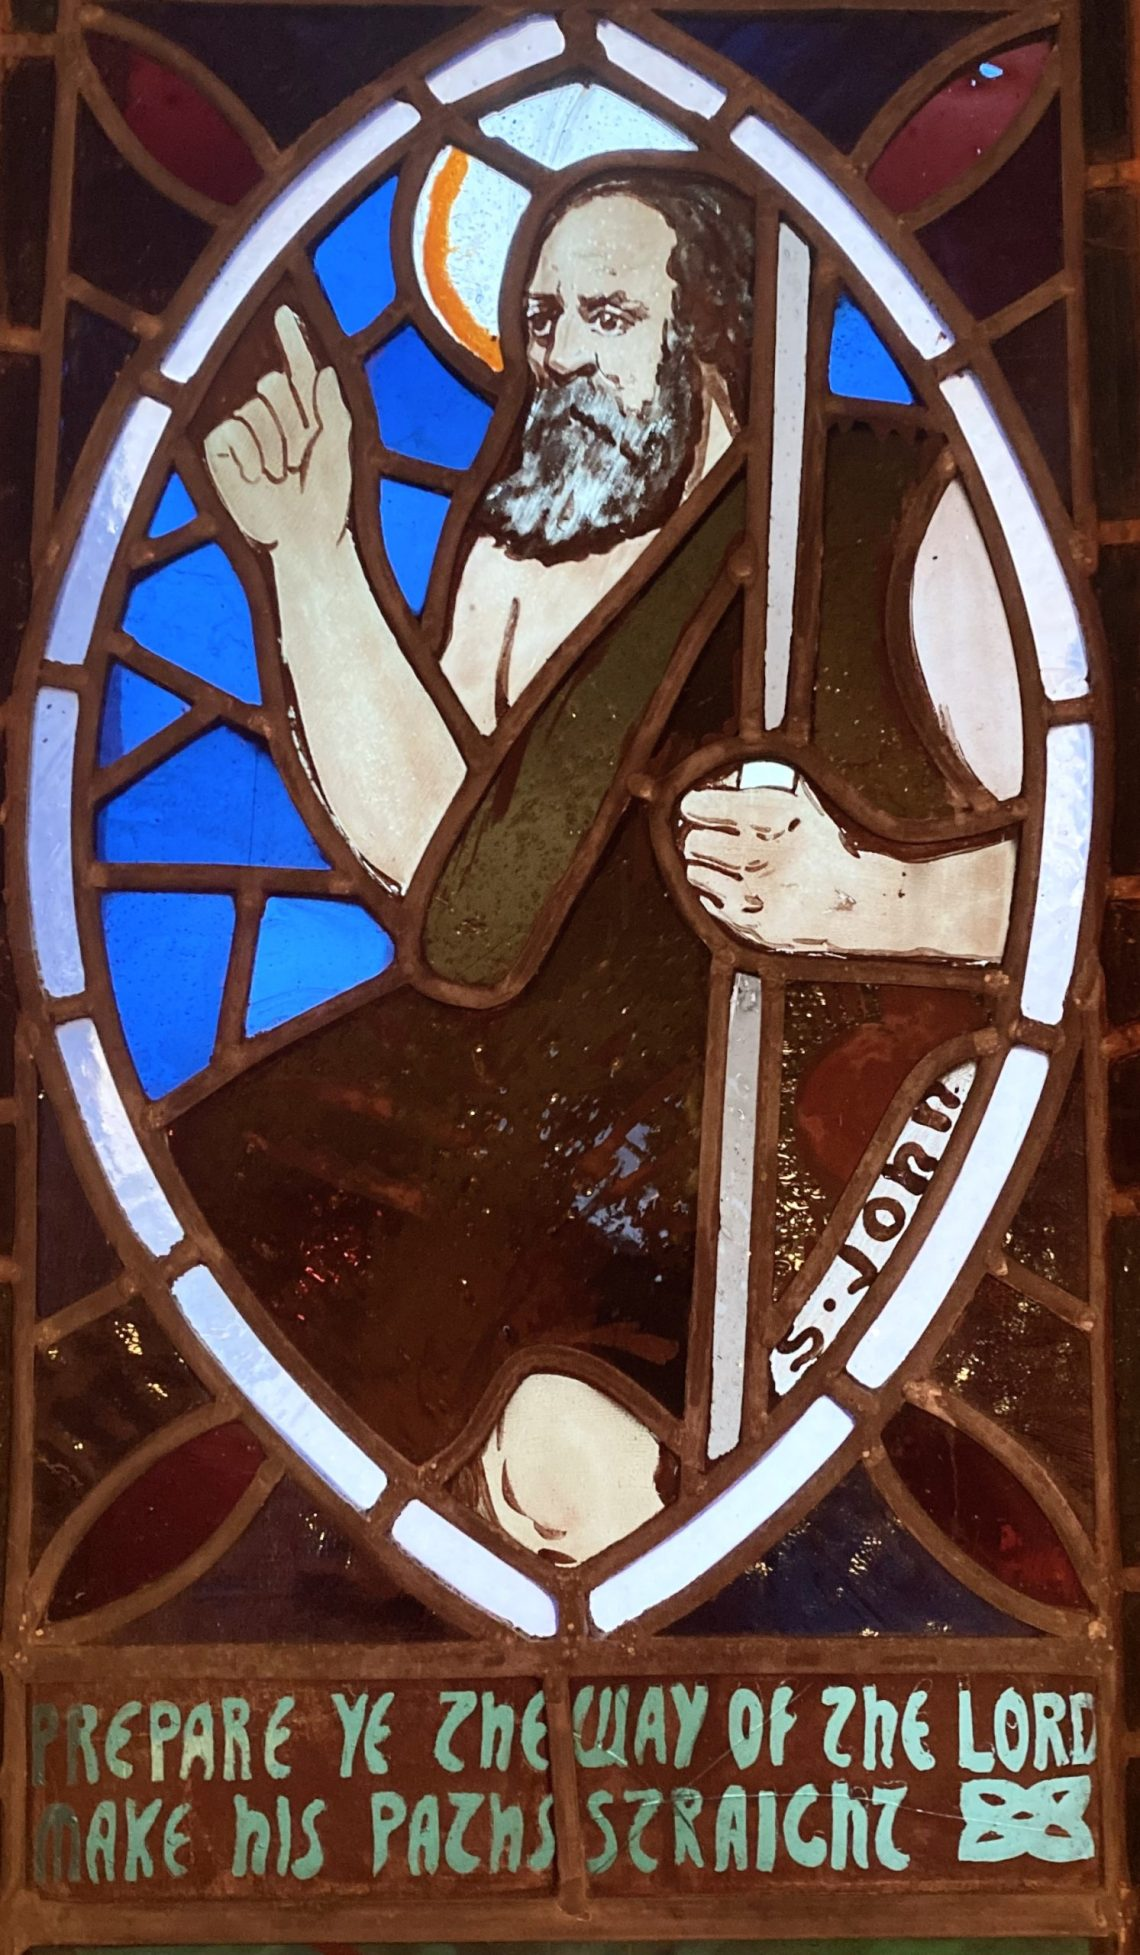 John the Baptist depicted in stained glass at Kiel Church